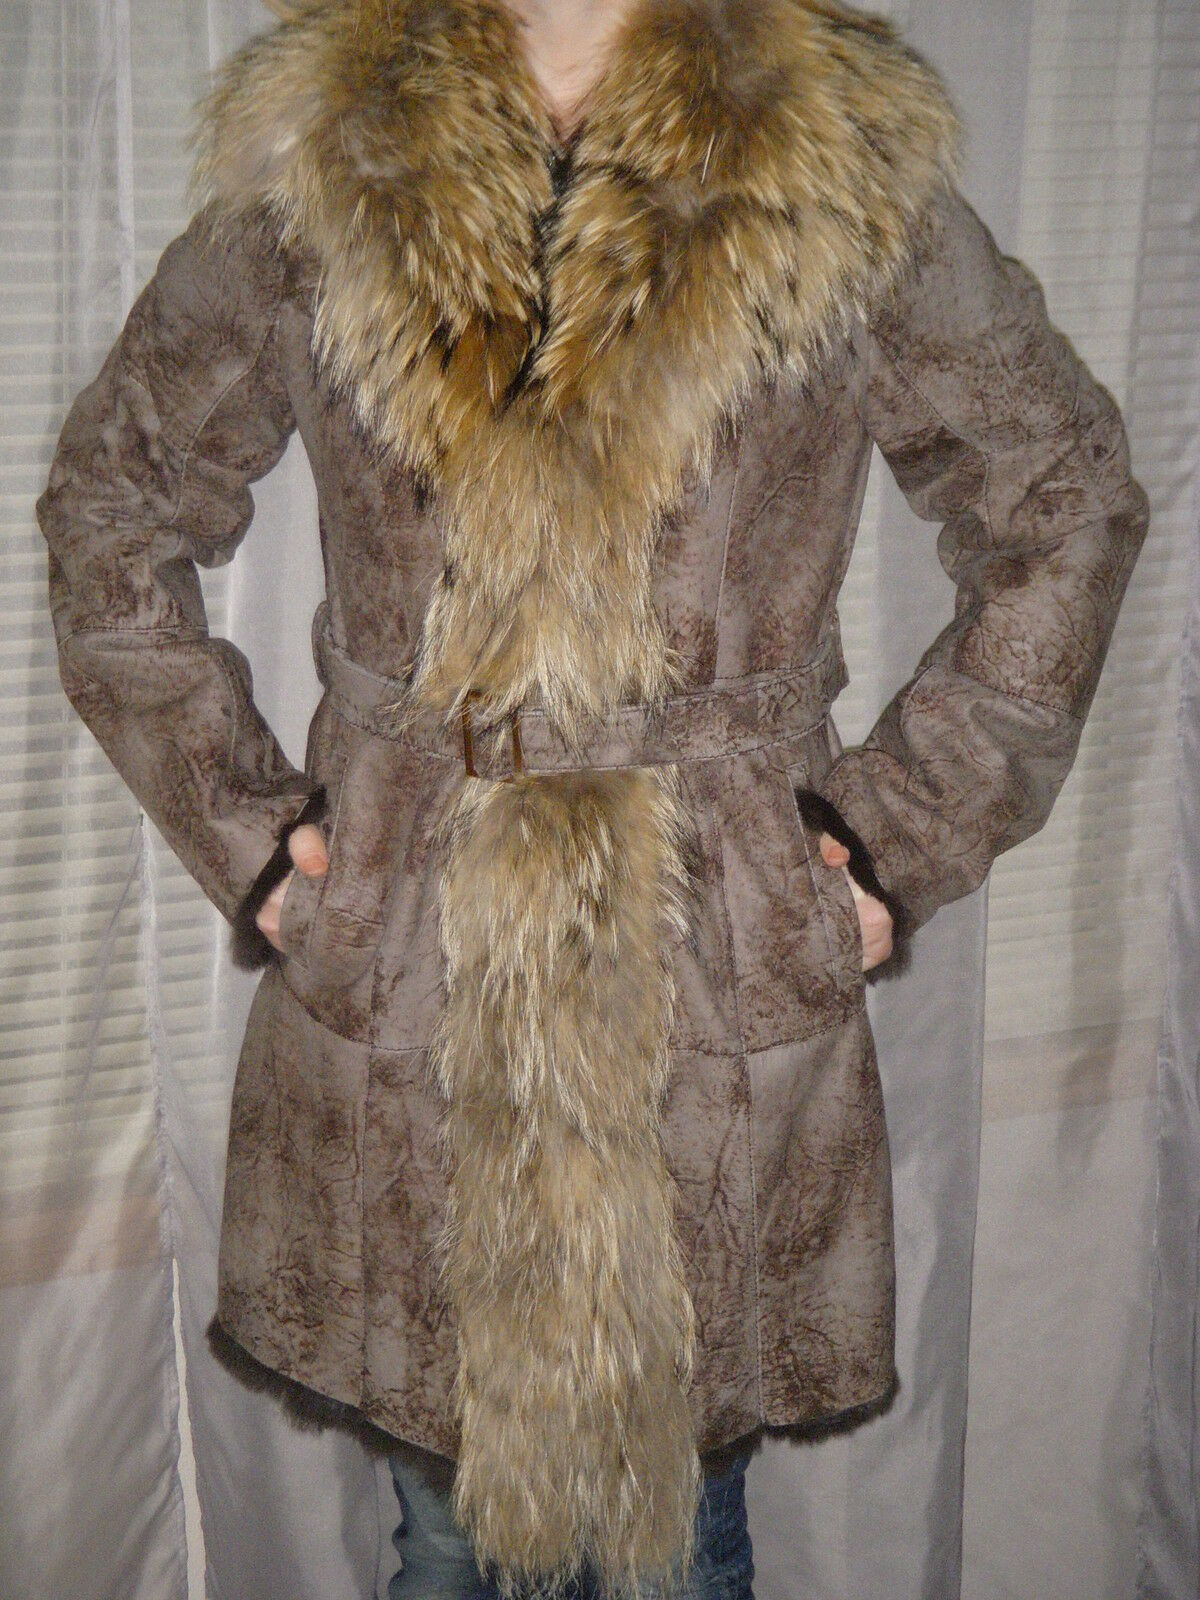 K-YEN Shearling Fur Leather Coat Racoon Trim made in France France France Size L BNWT d4056d